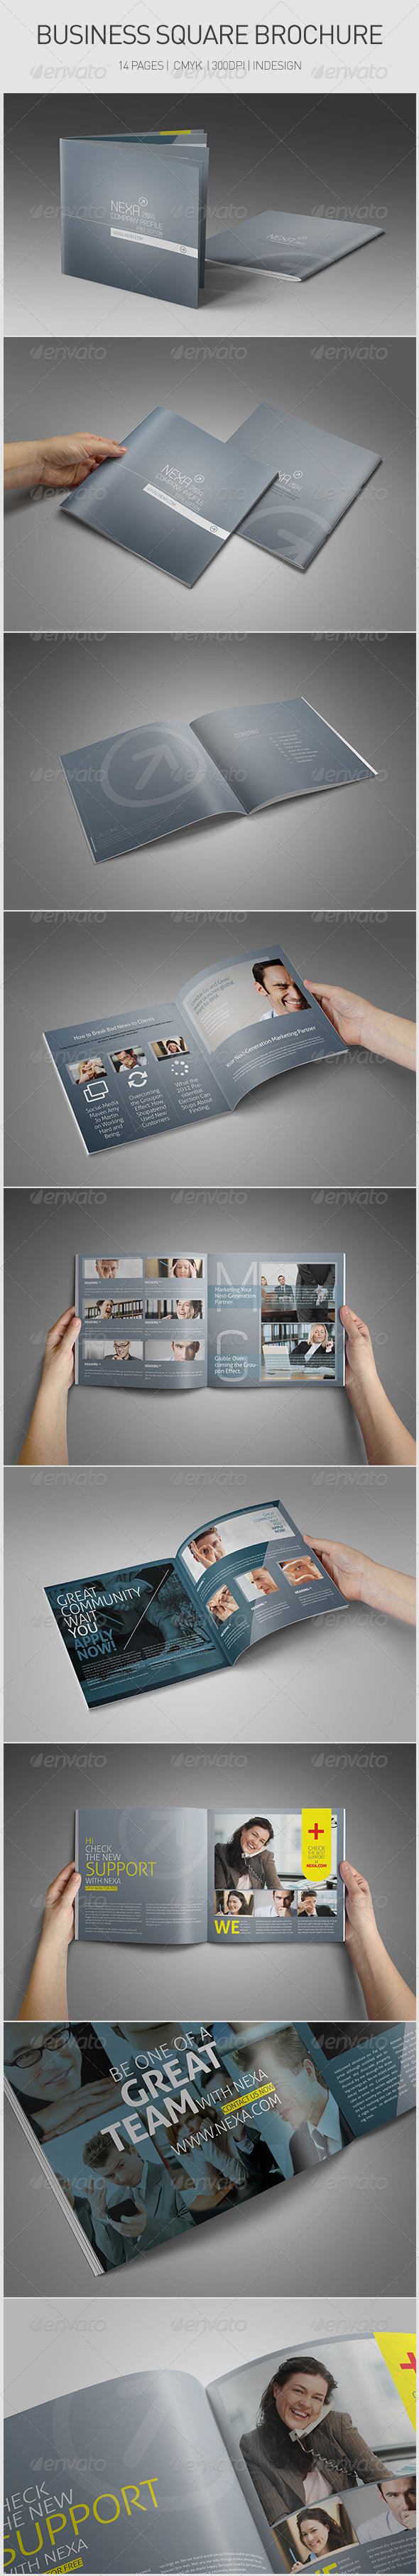 Business Square Brochure - Corporate Brochures